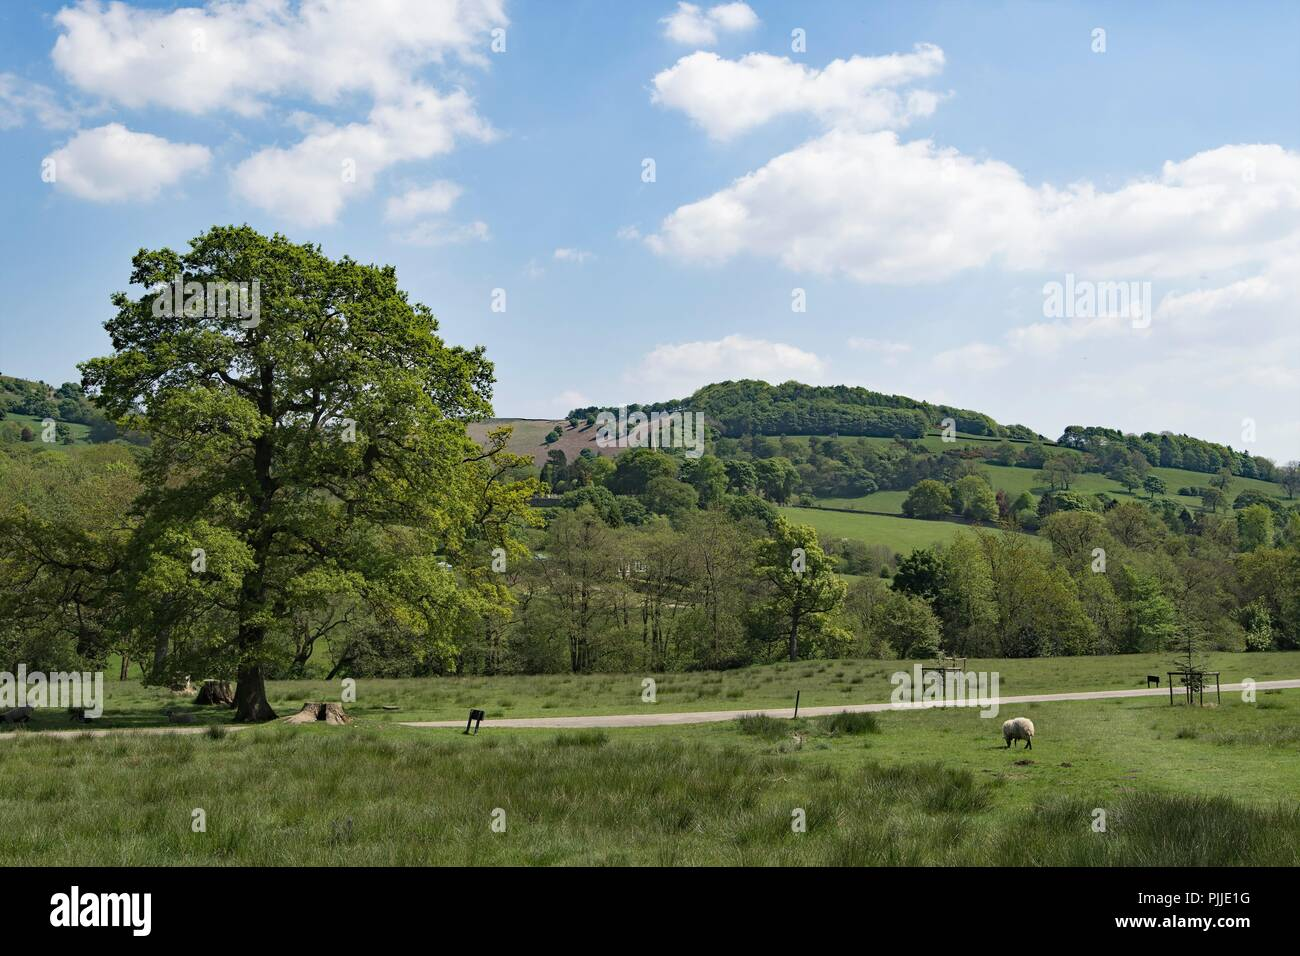 Taken to capture the pastoral perfection and lush spring time greenery within Hathersage meadowland, in the Peak District, Derbyshire. - Stock Image